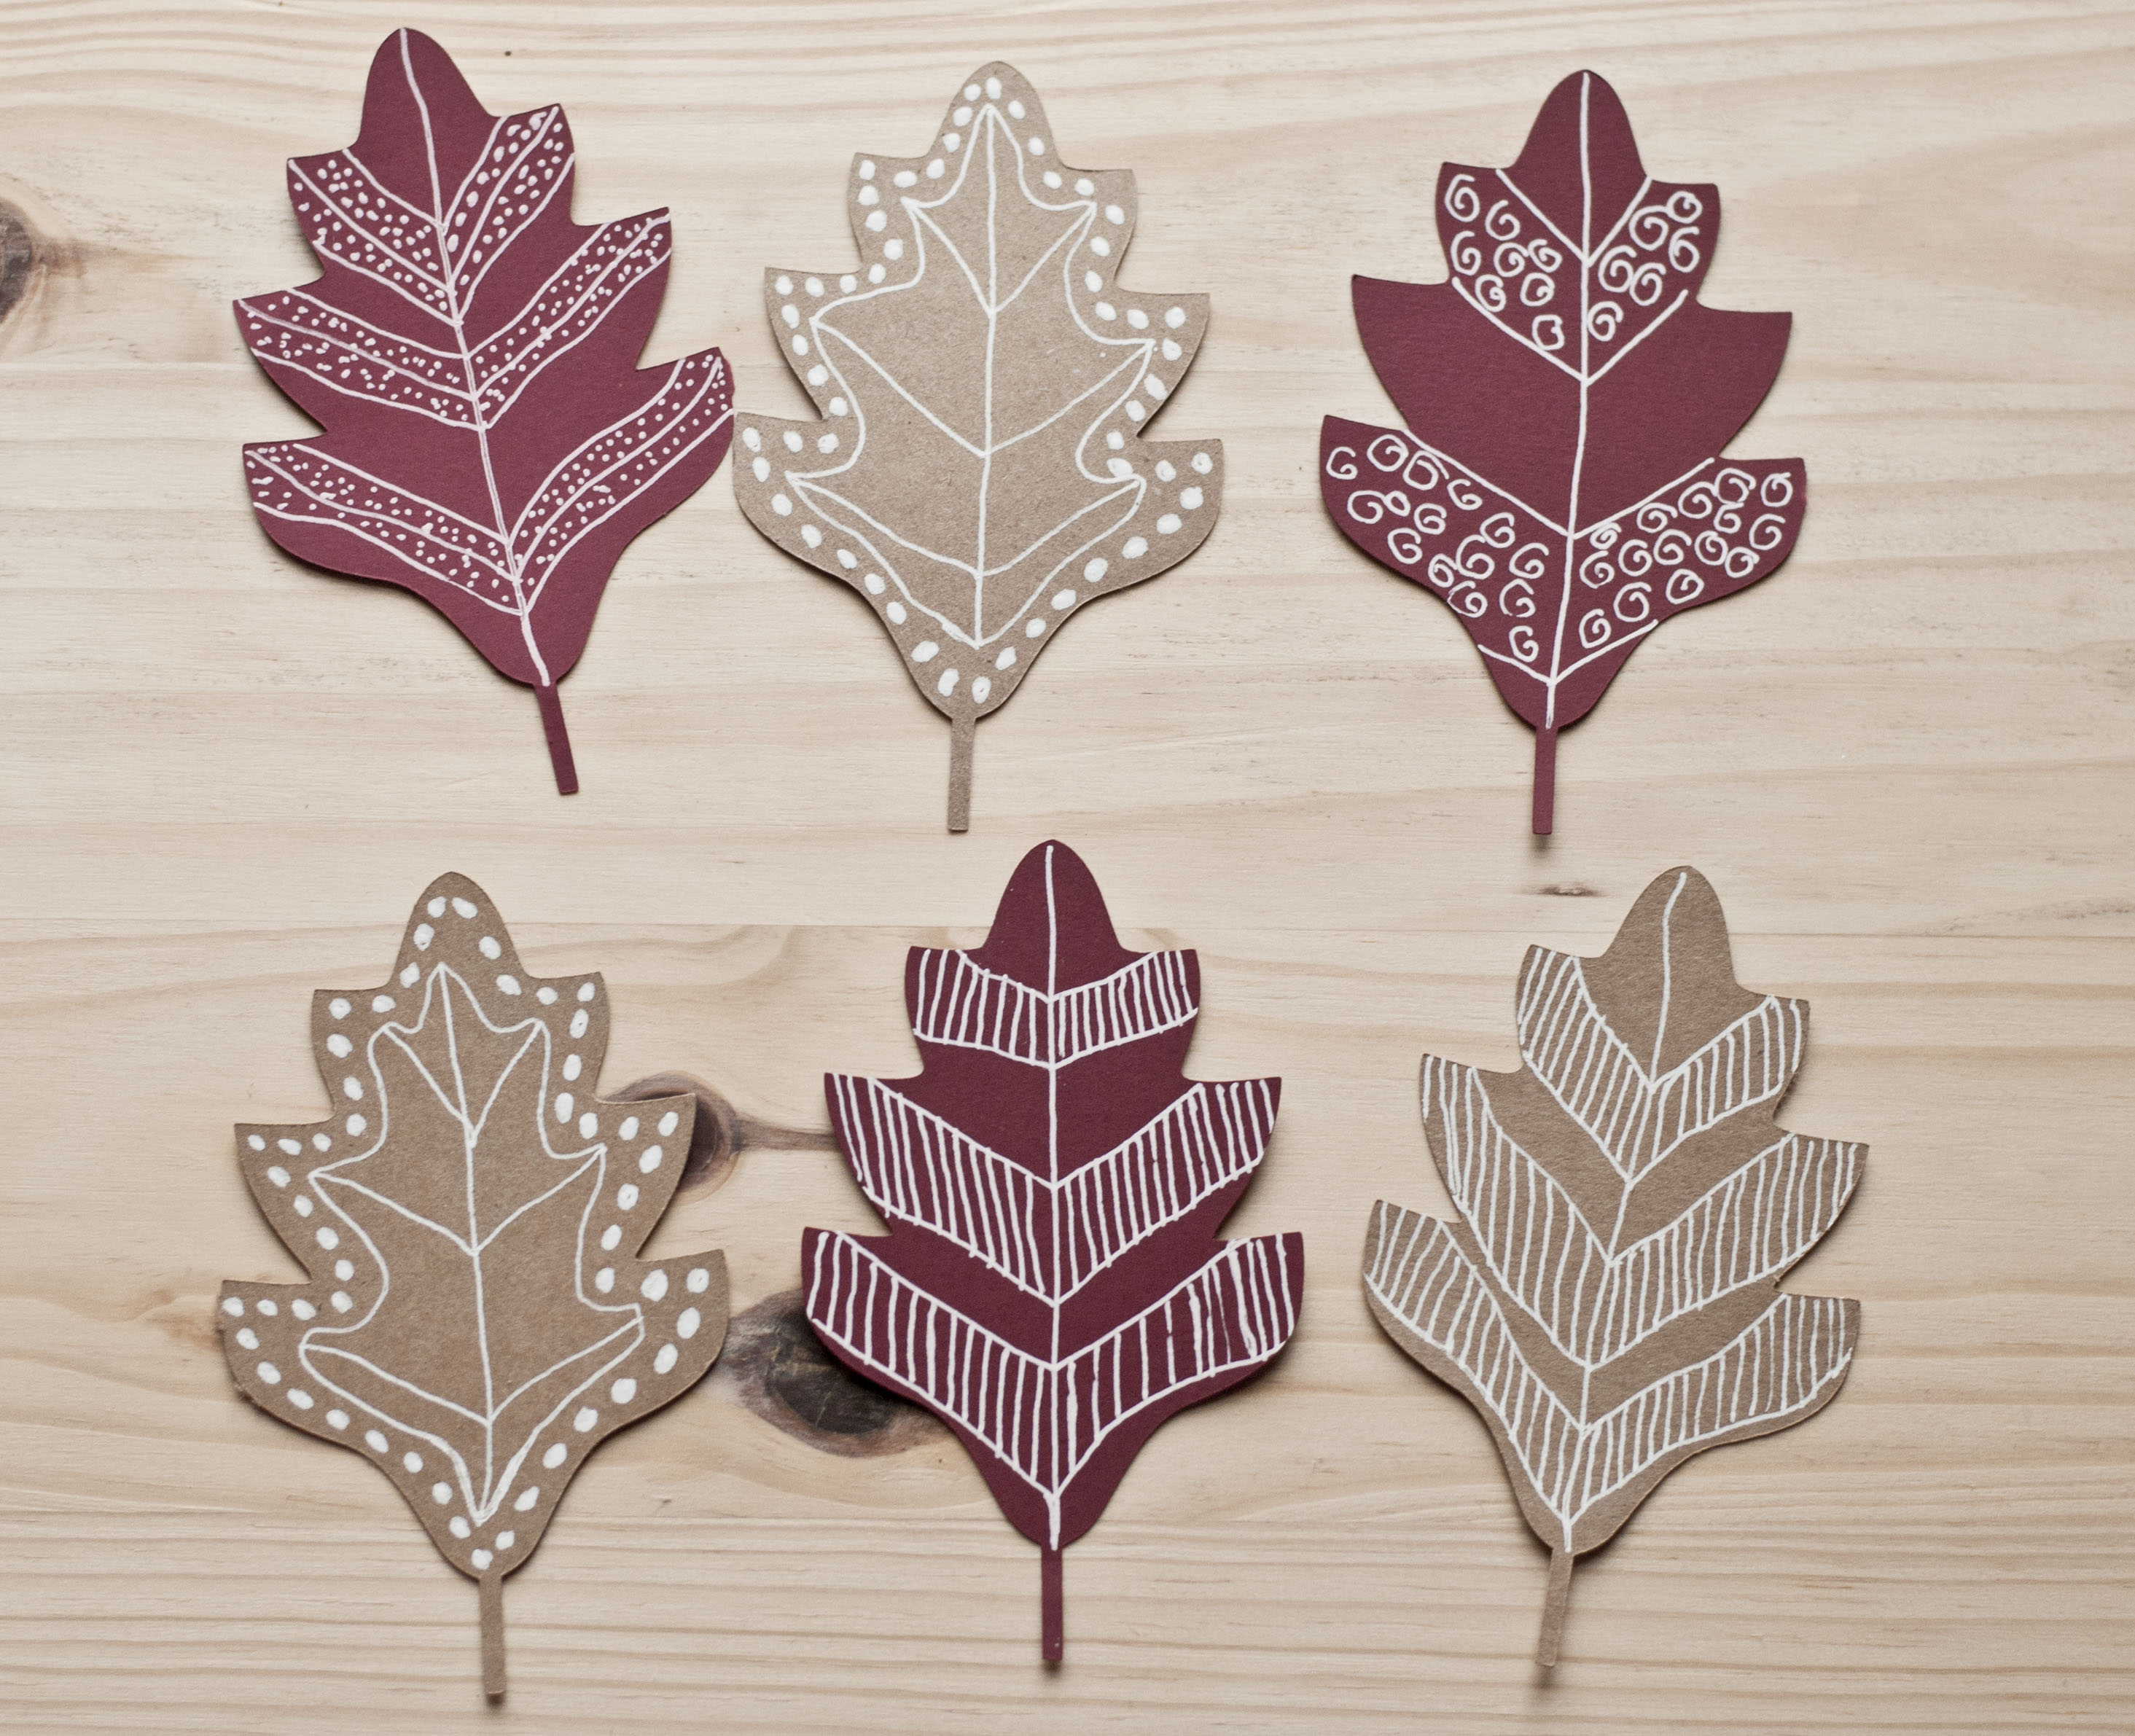 paper leaves decorated with doodle art